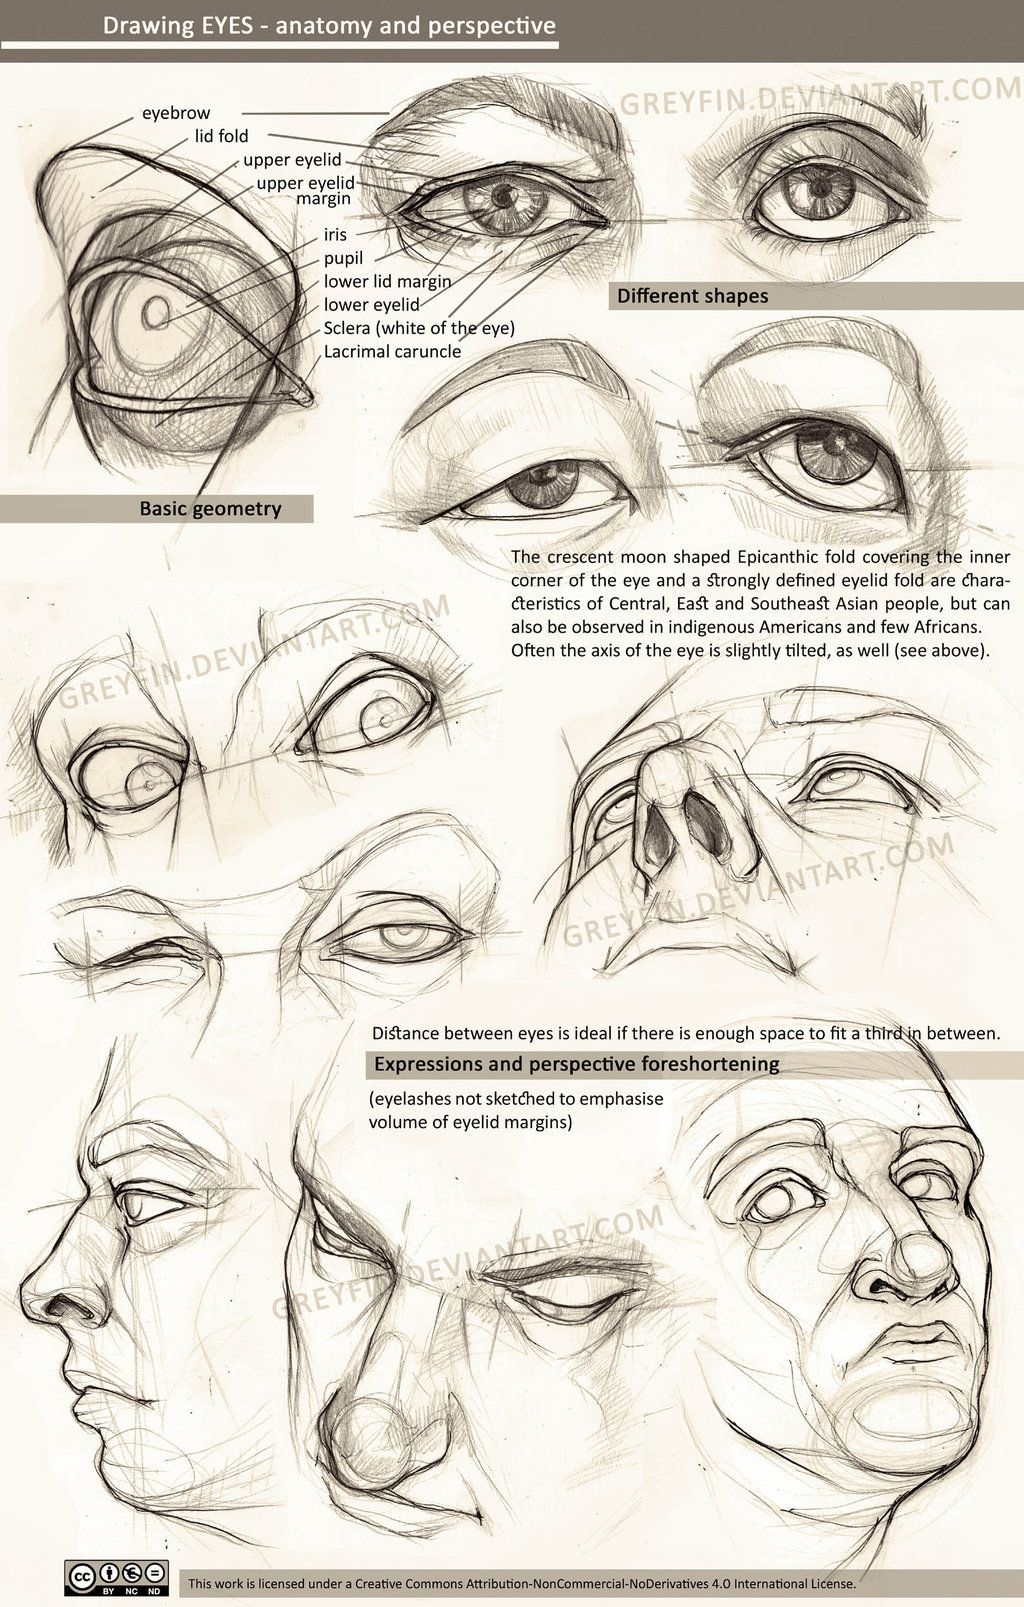 Drawing eyes - anatomy and perspective by greyfin | Drawing ...